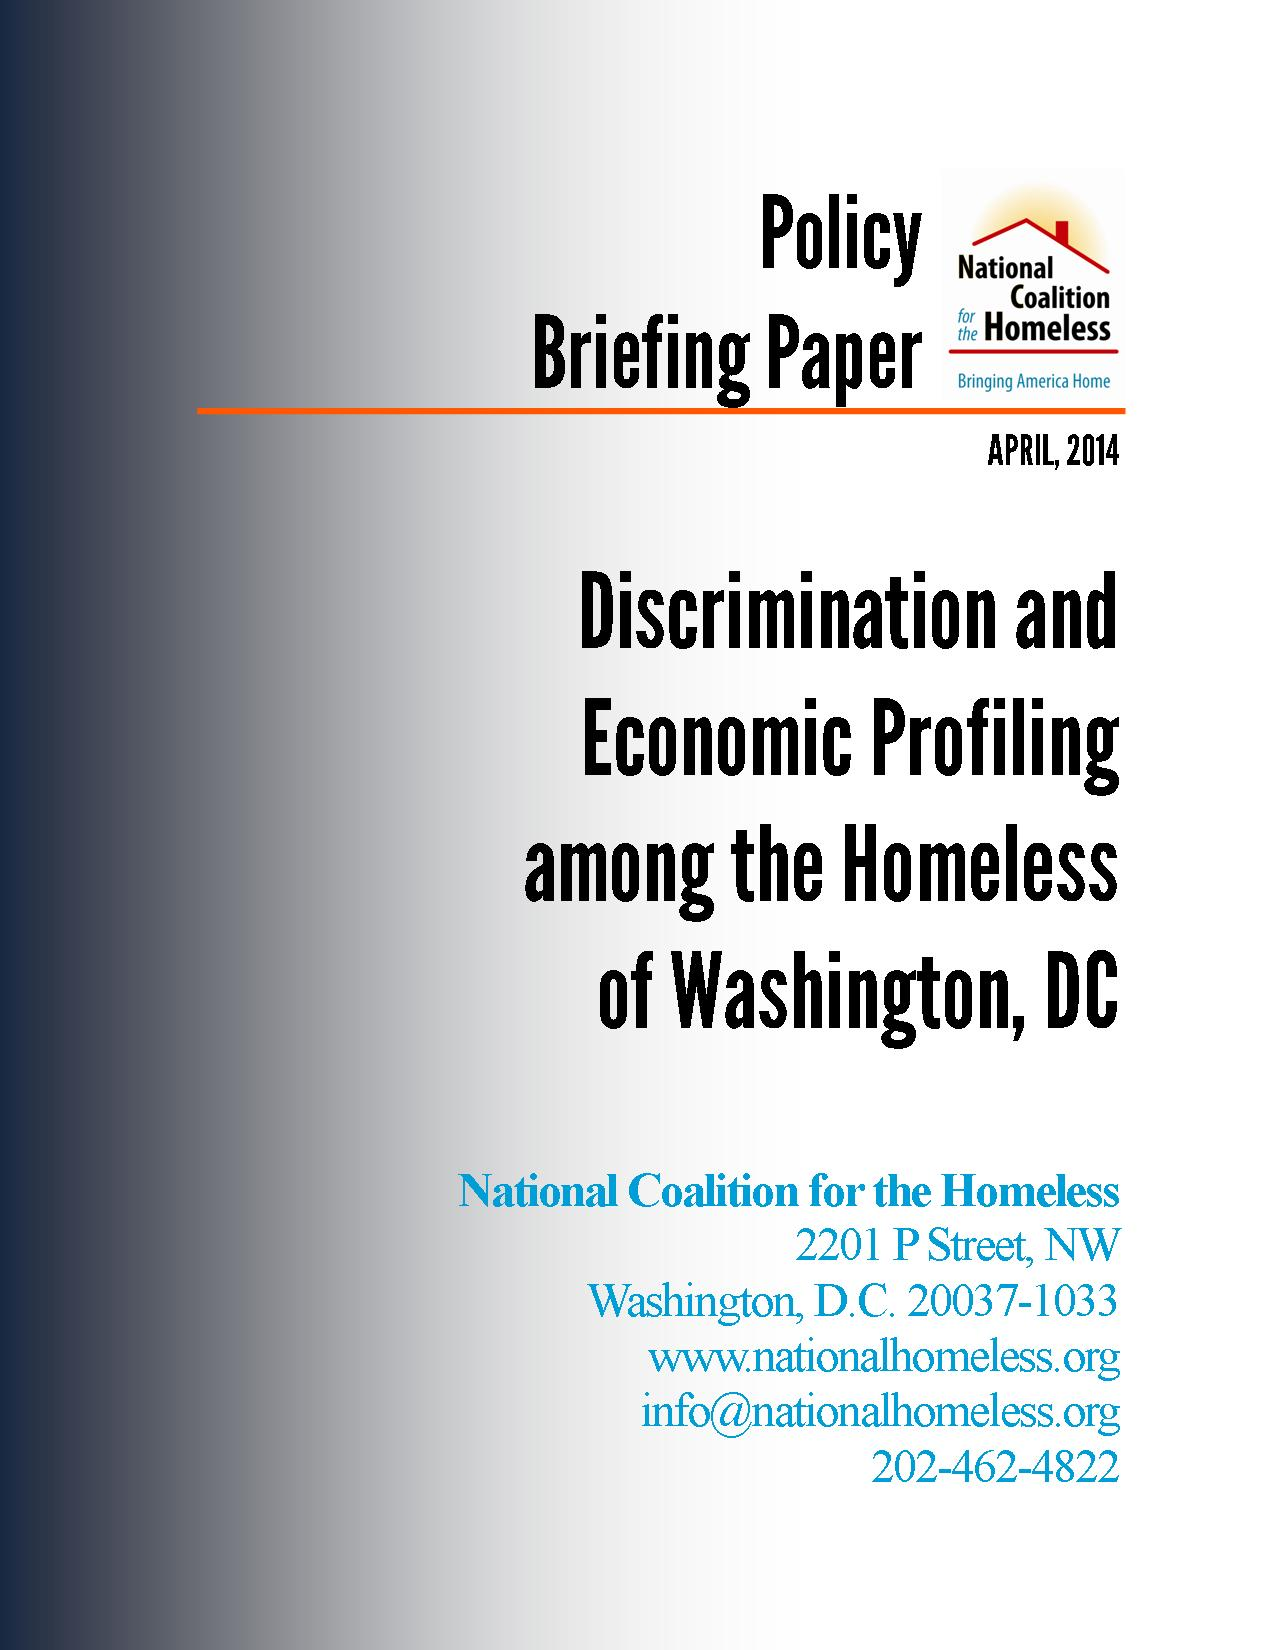 Discrimination and Economic Profiling Report